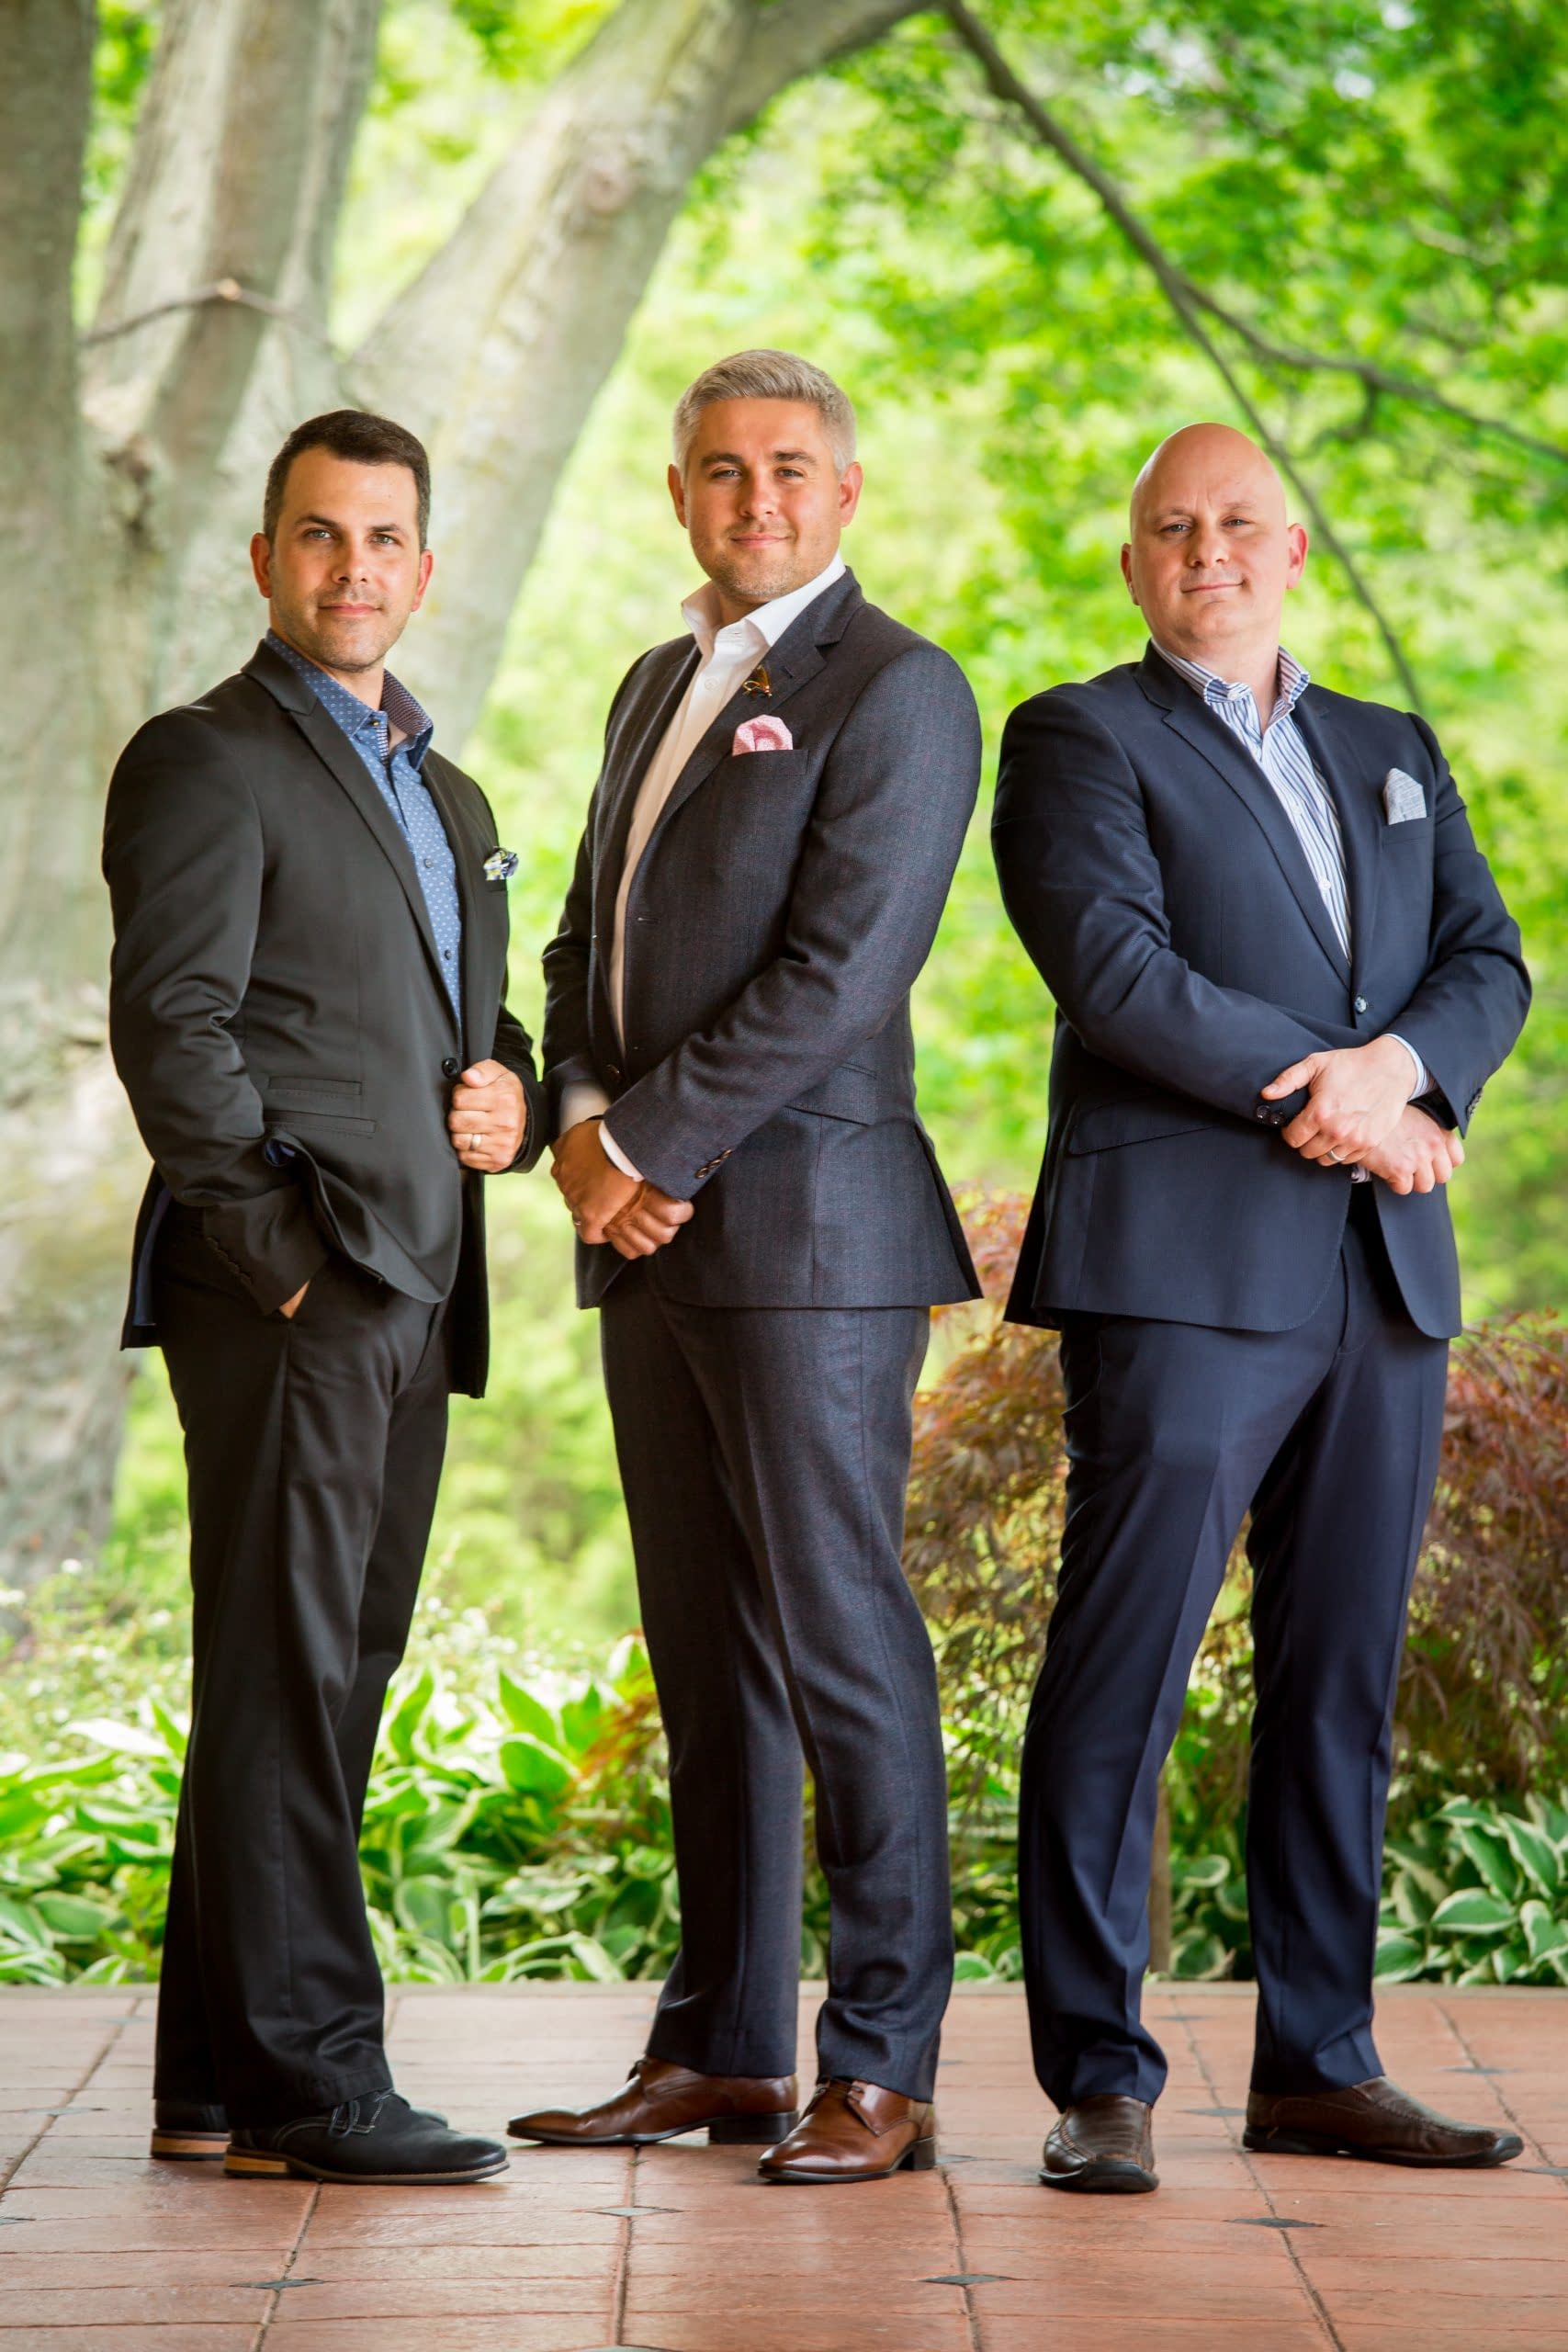 Group Photo of three real estate agents in front of trees and natural environment